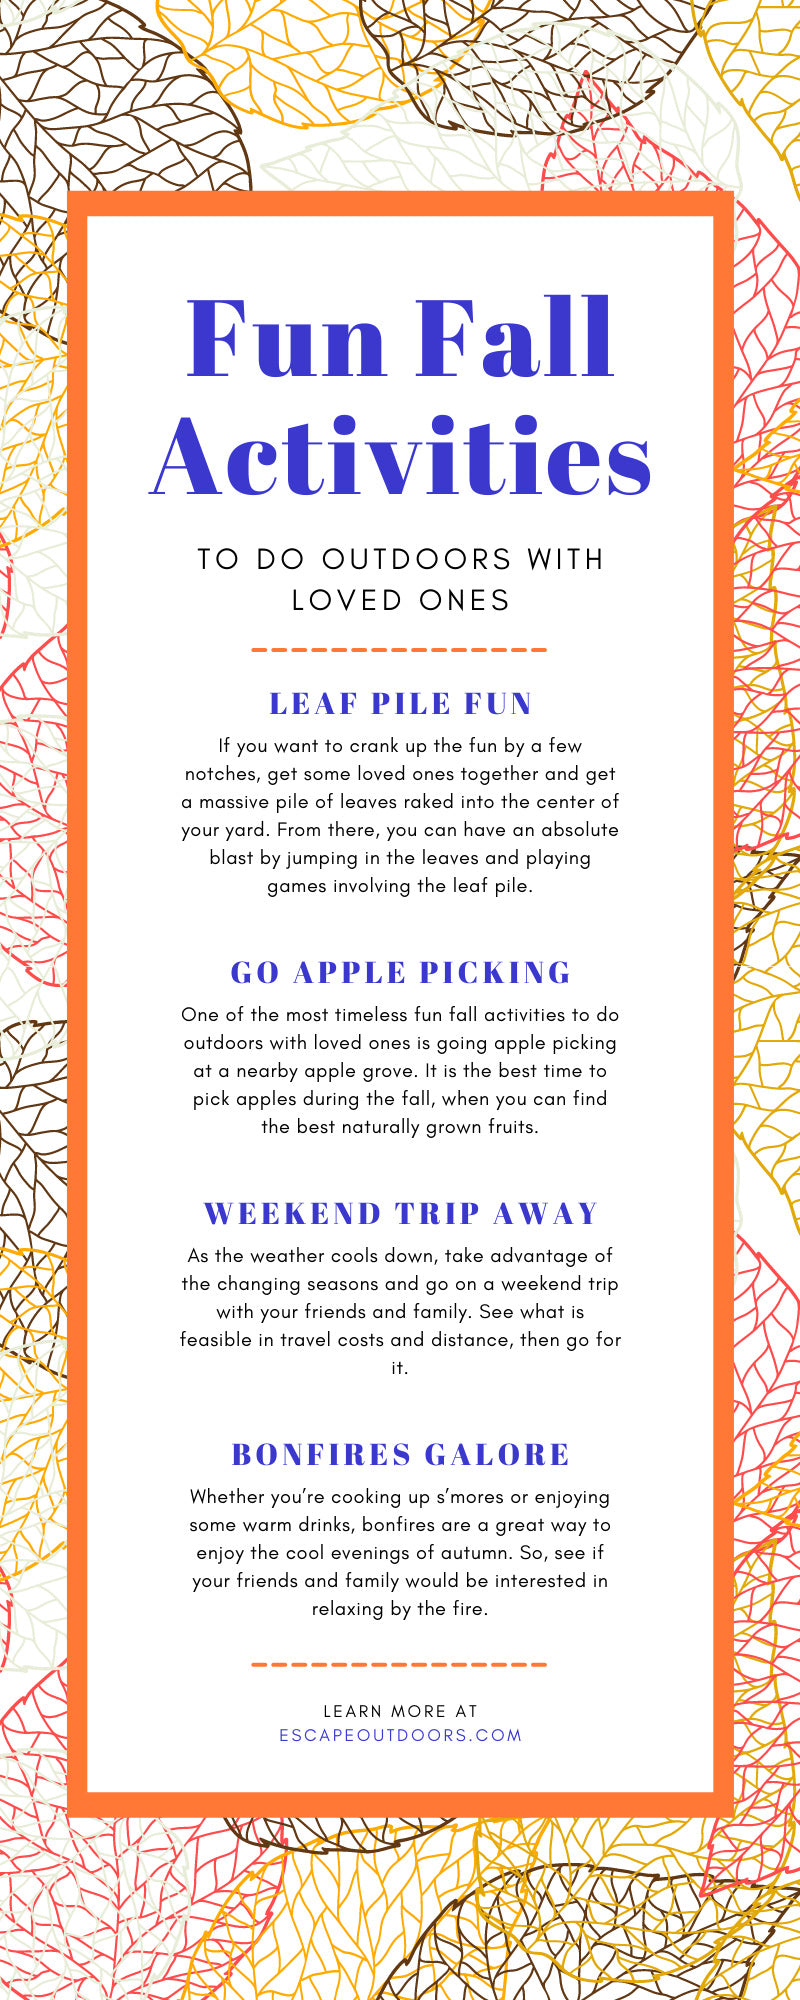 Fun Fall Activities To Do Outdoors With Loved Ones